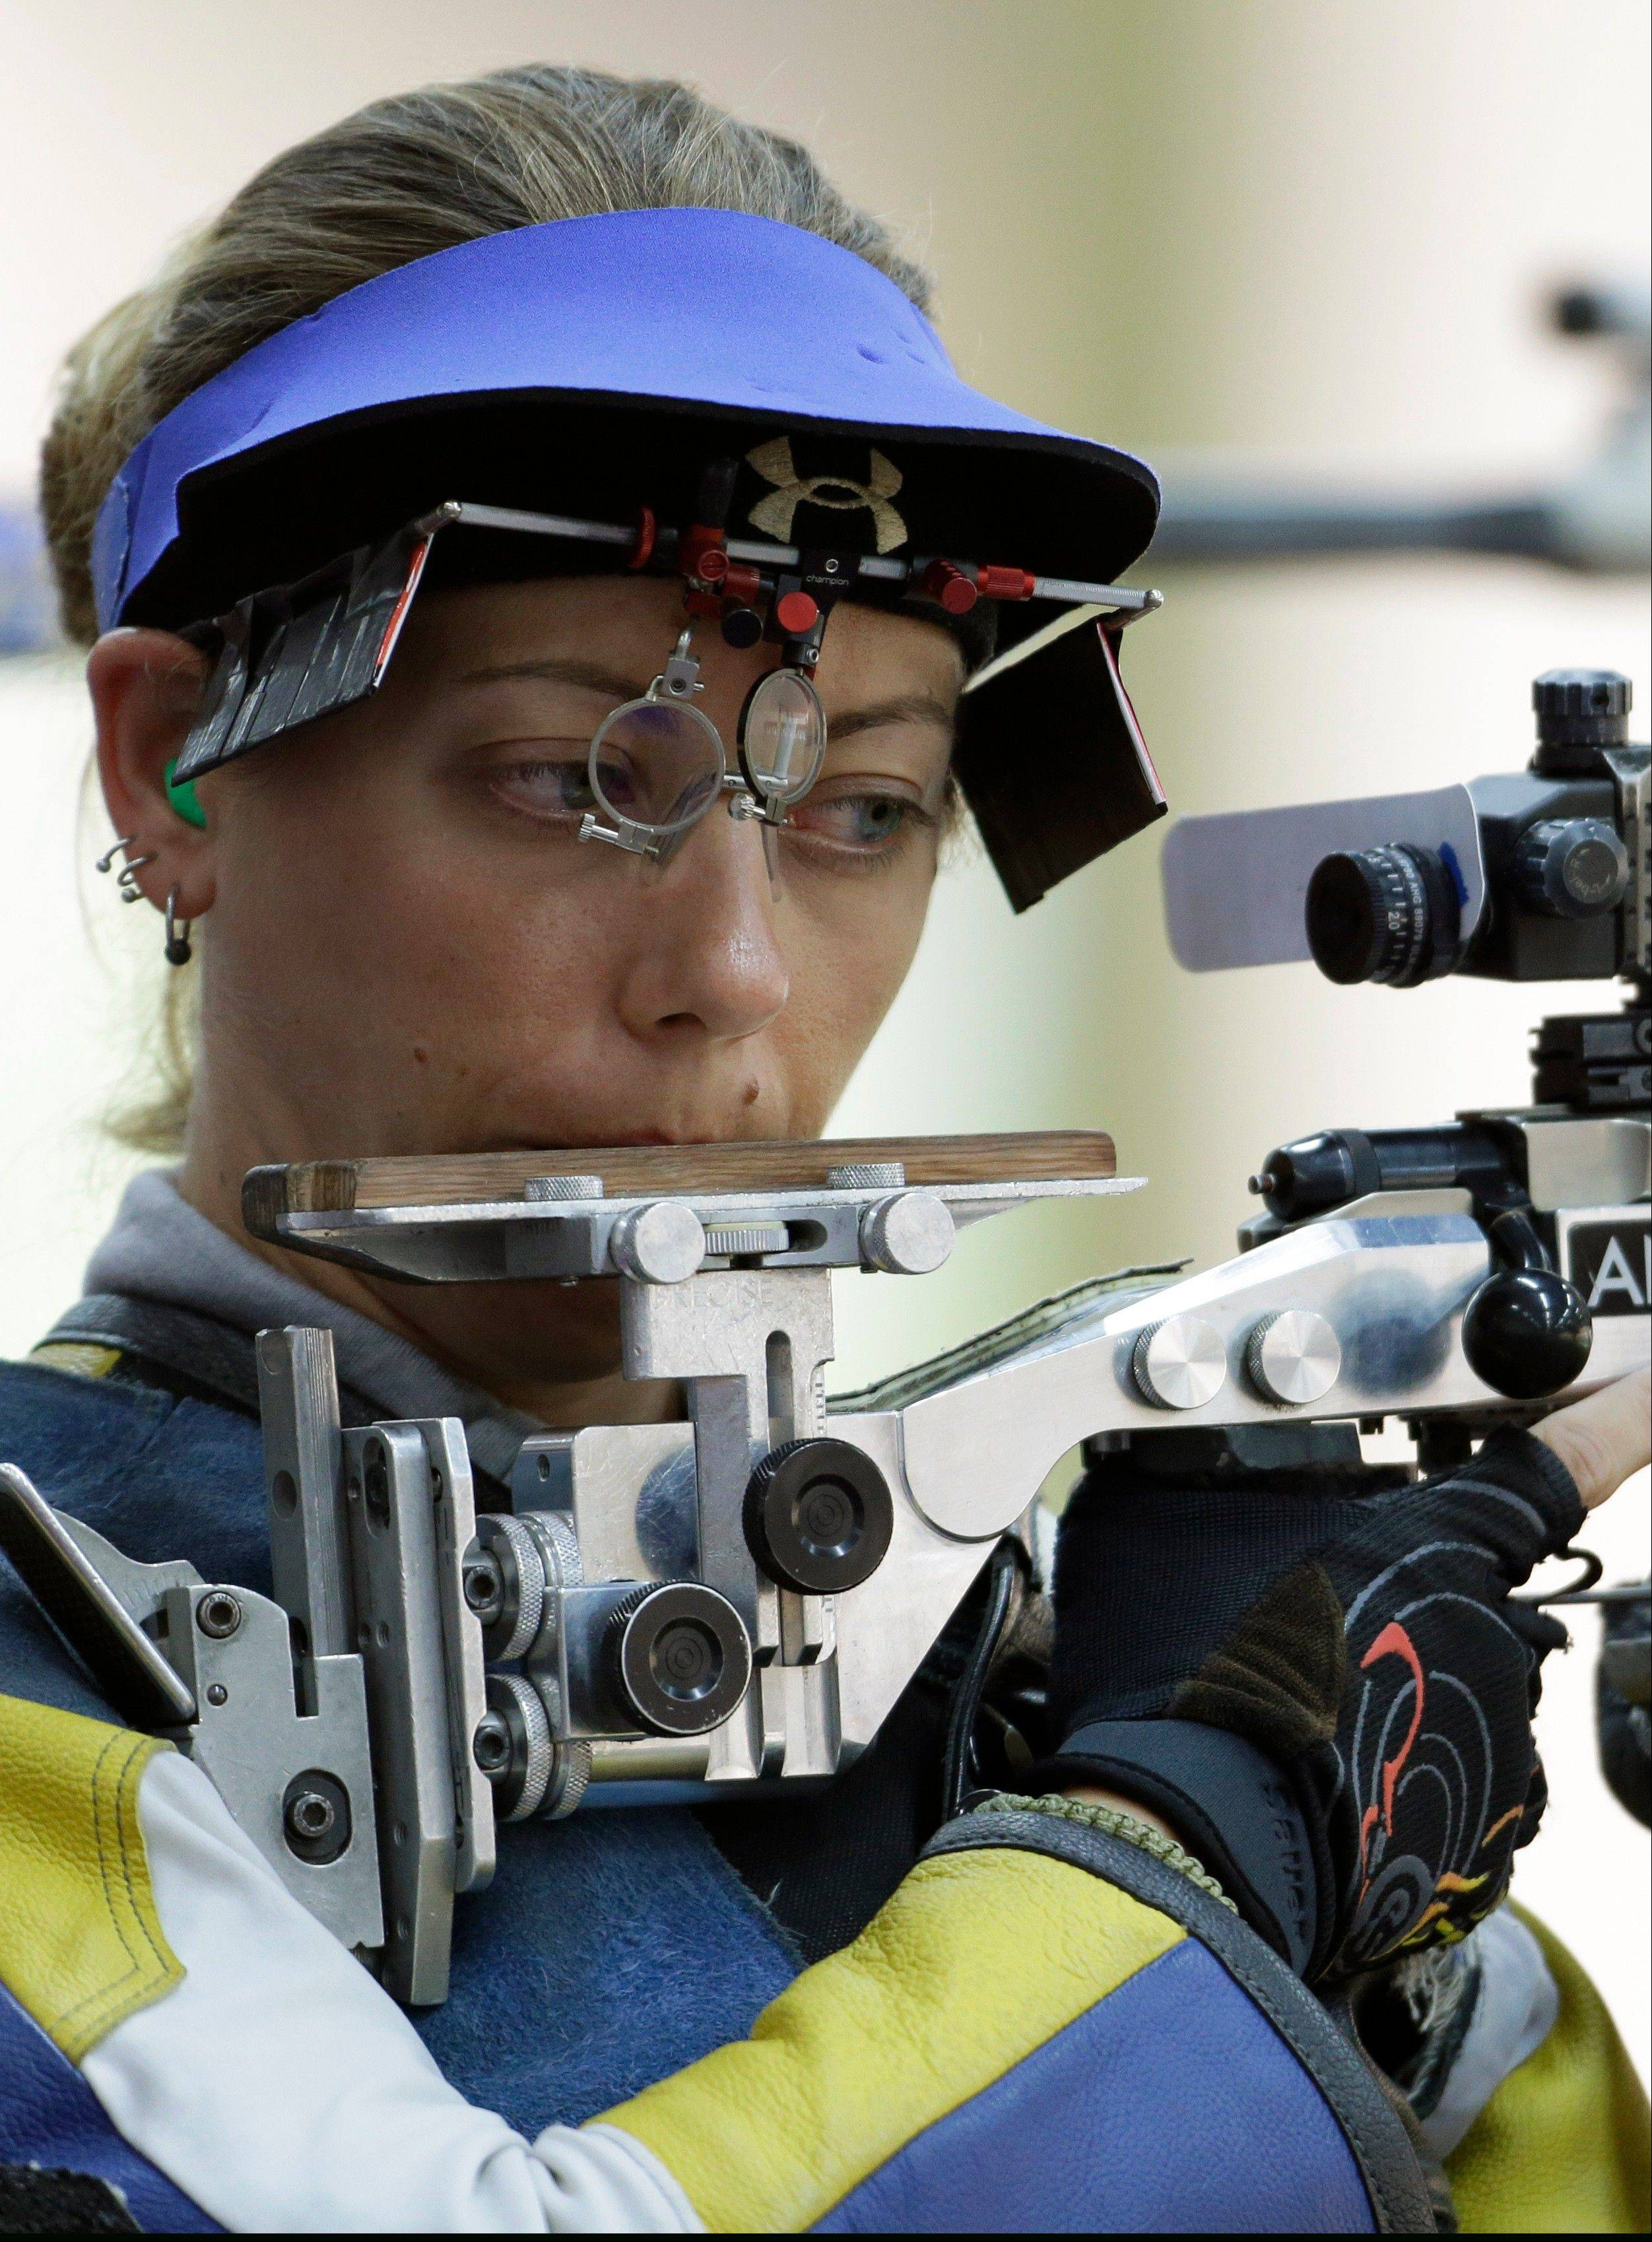 United States of America's Jamie Lynn Gray, shoots during qualifiers for the women's 50-meter rifle 3 positions event, at the 2012 Summer Olympics, Saturday, Aug. 4, 2012, in London.